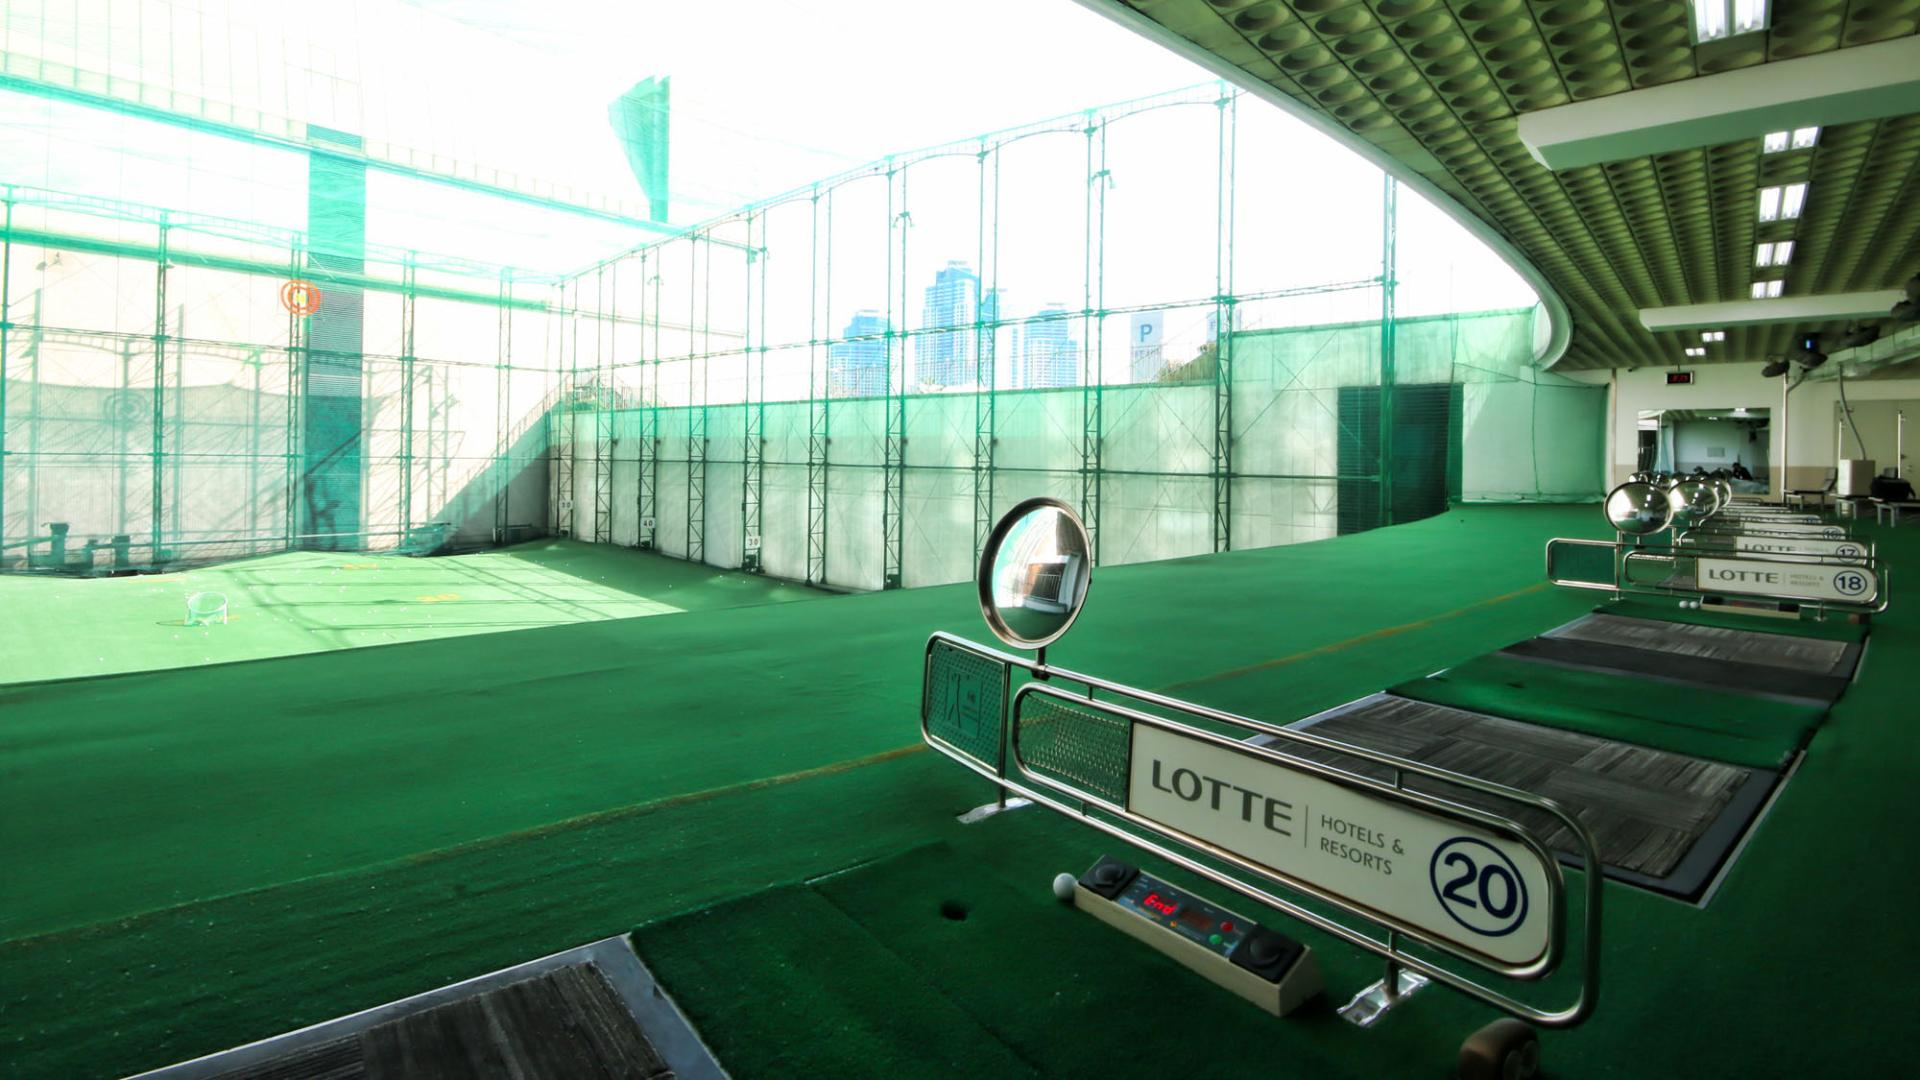 Lotte Hotel Busan-Facilities-Spa & Fitness-Golf Driving Range